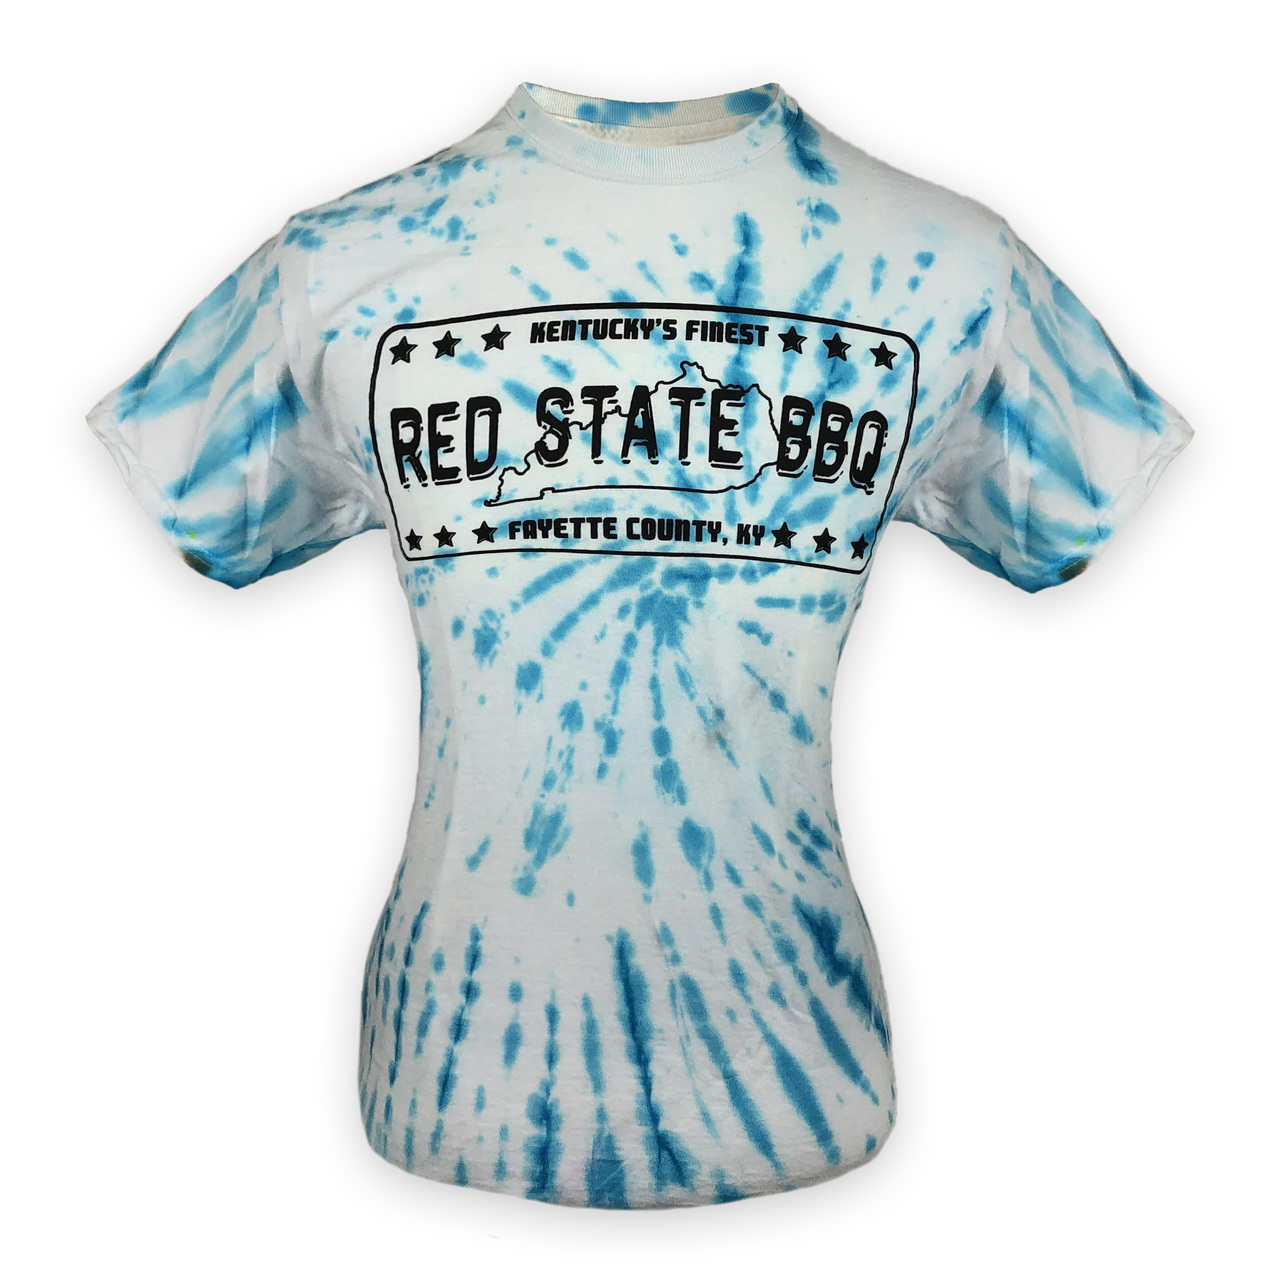 Tye Dye  T-shirt with  our vintage Red State BBQ logo.  Colors will vary!